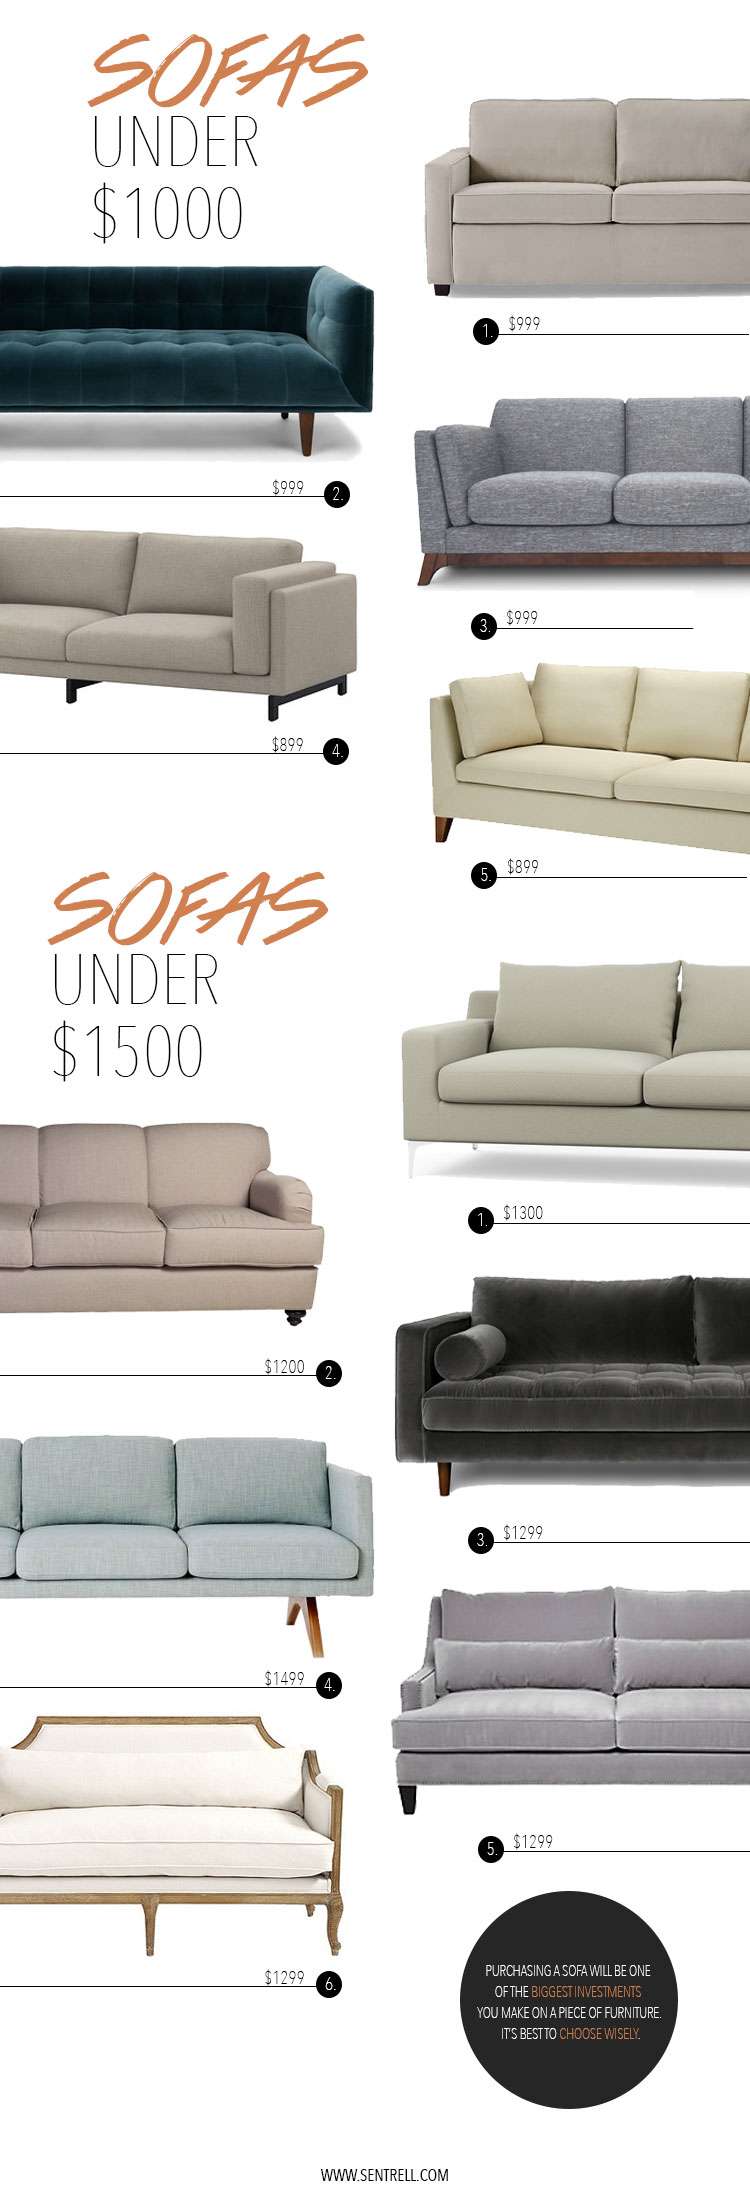 Sofas Under $1000 and Sofas Under $1500